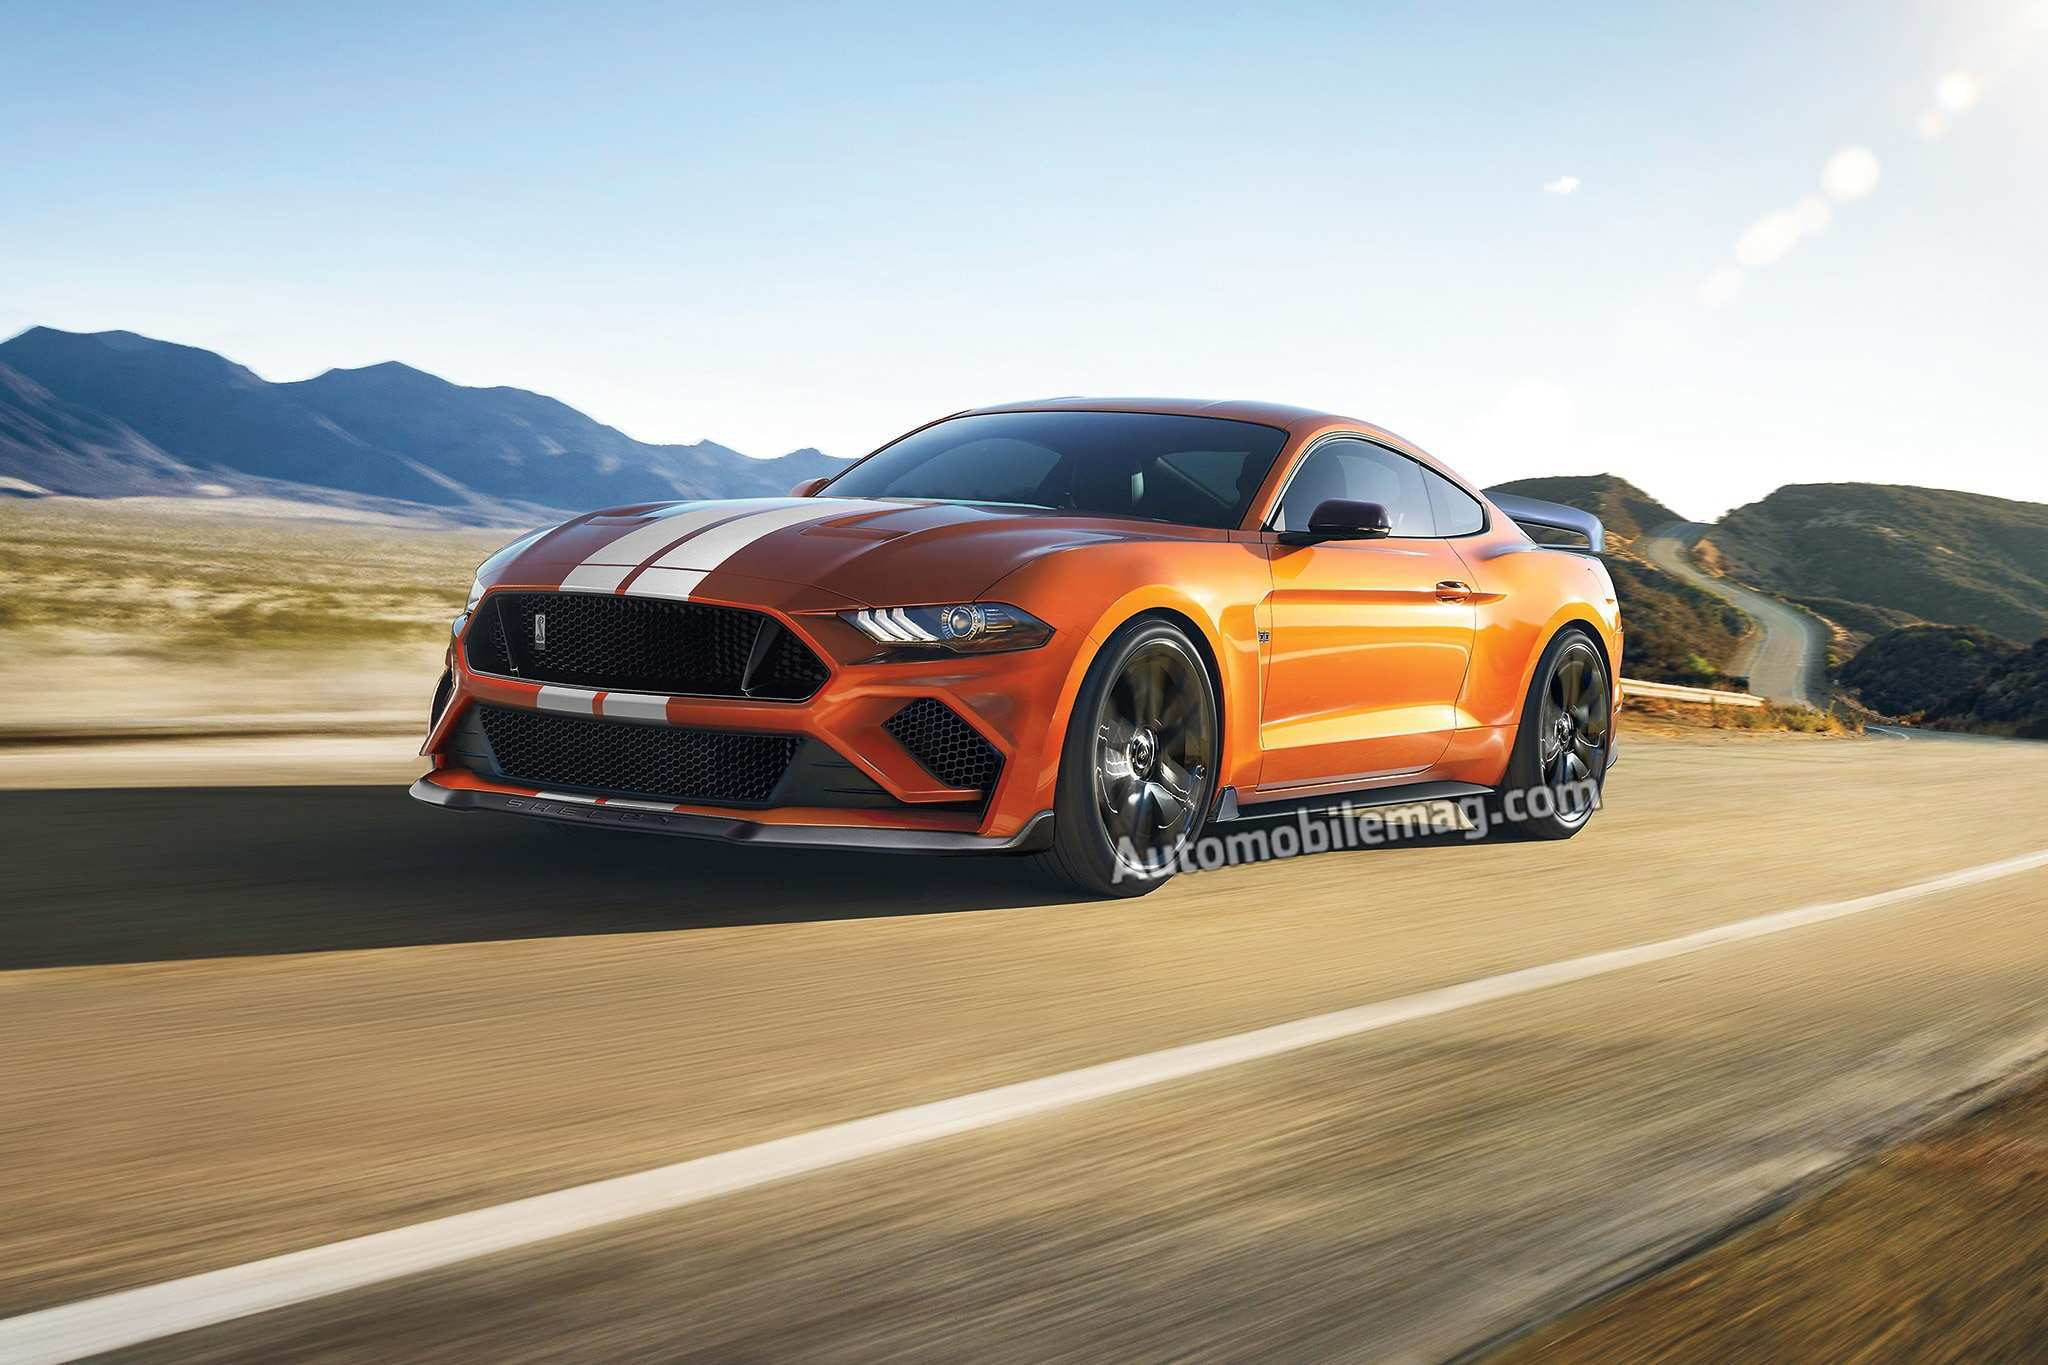 74 The 2019 Ford Mustang Shelby Gt500 Images